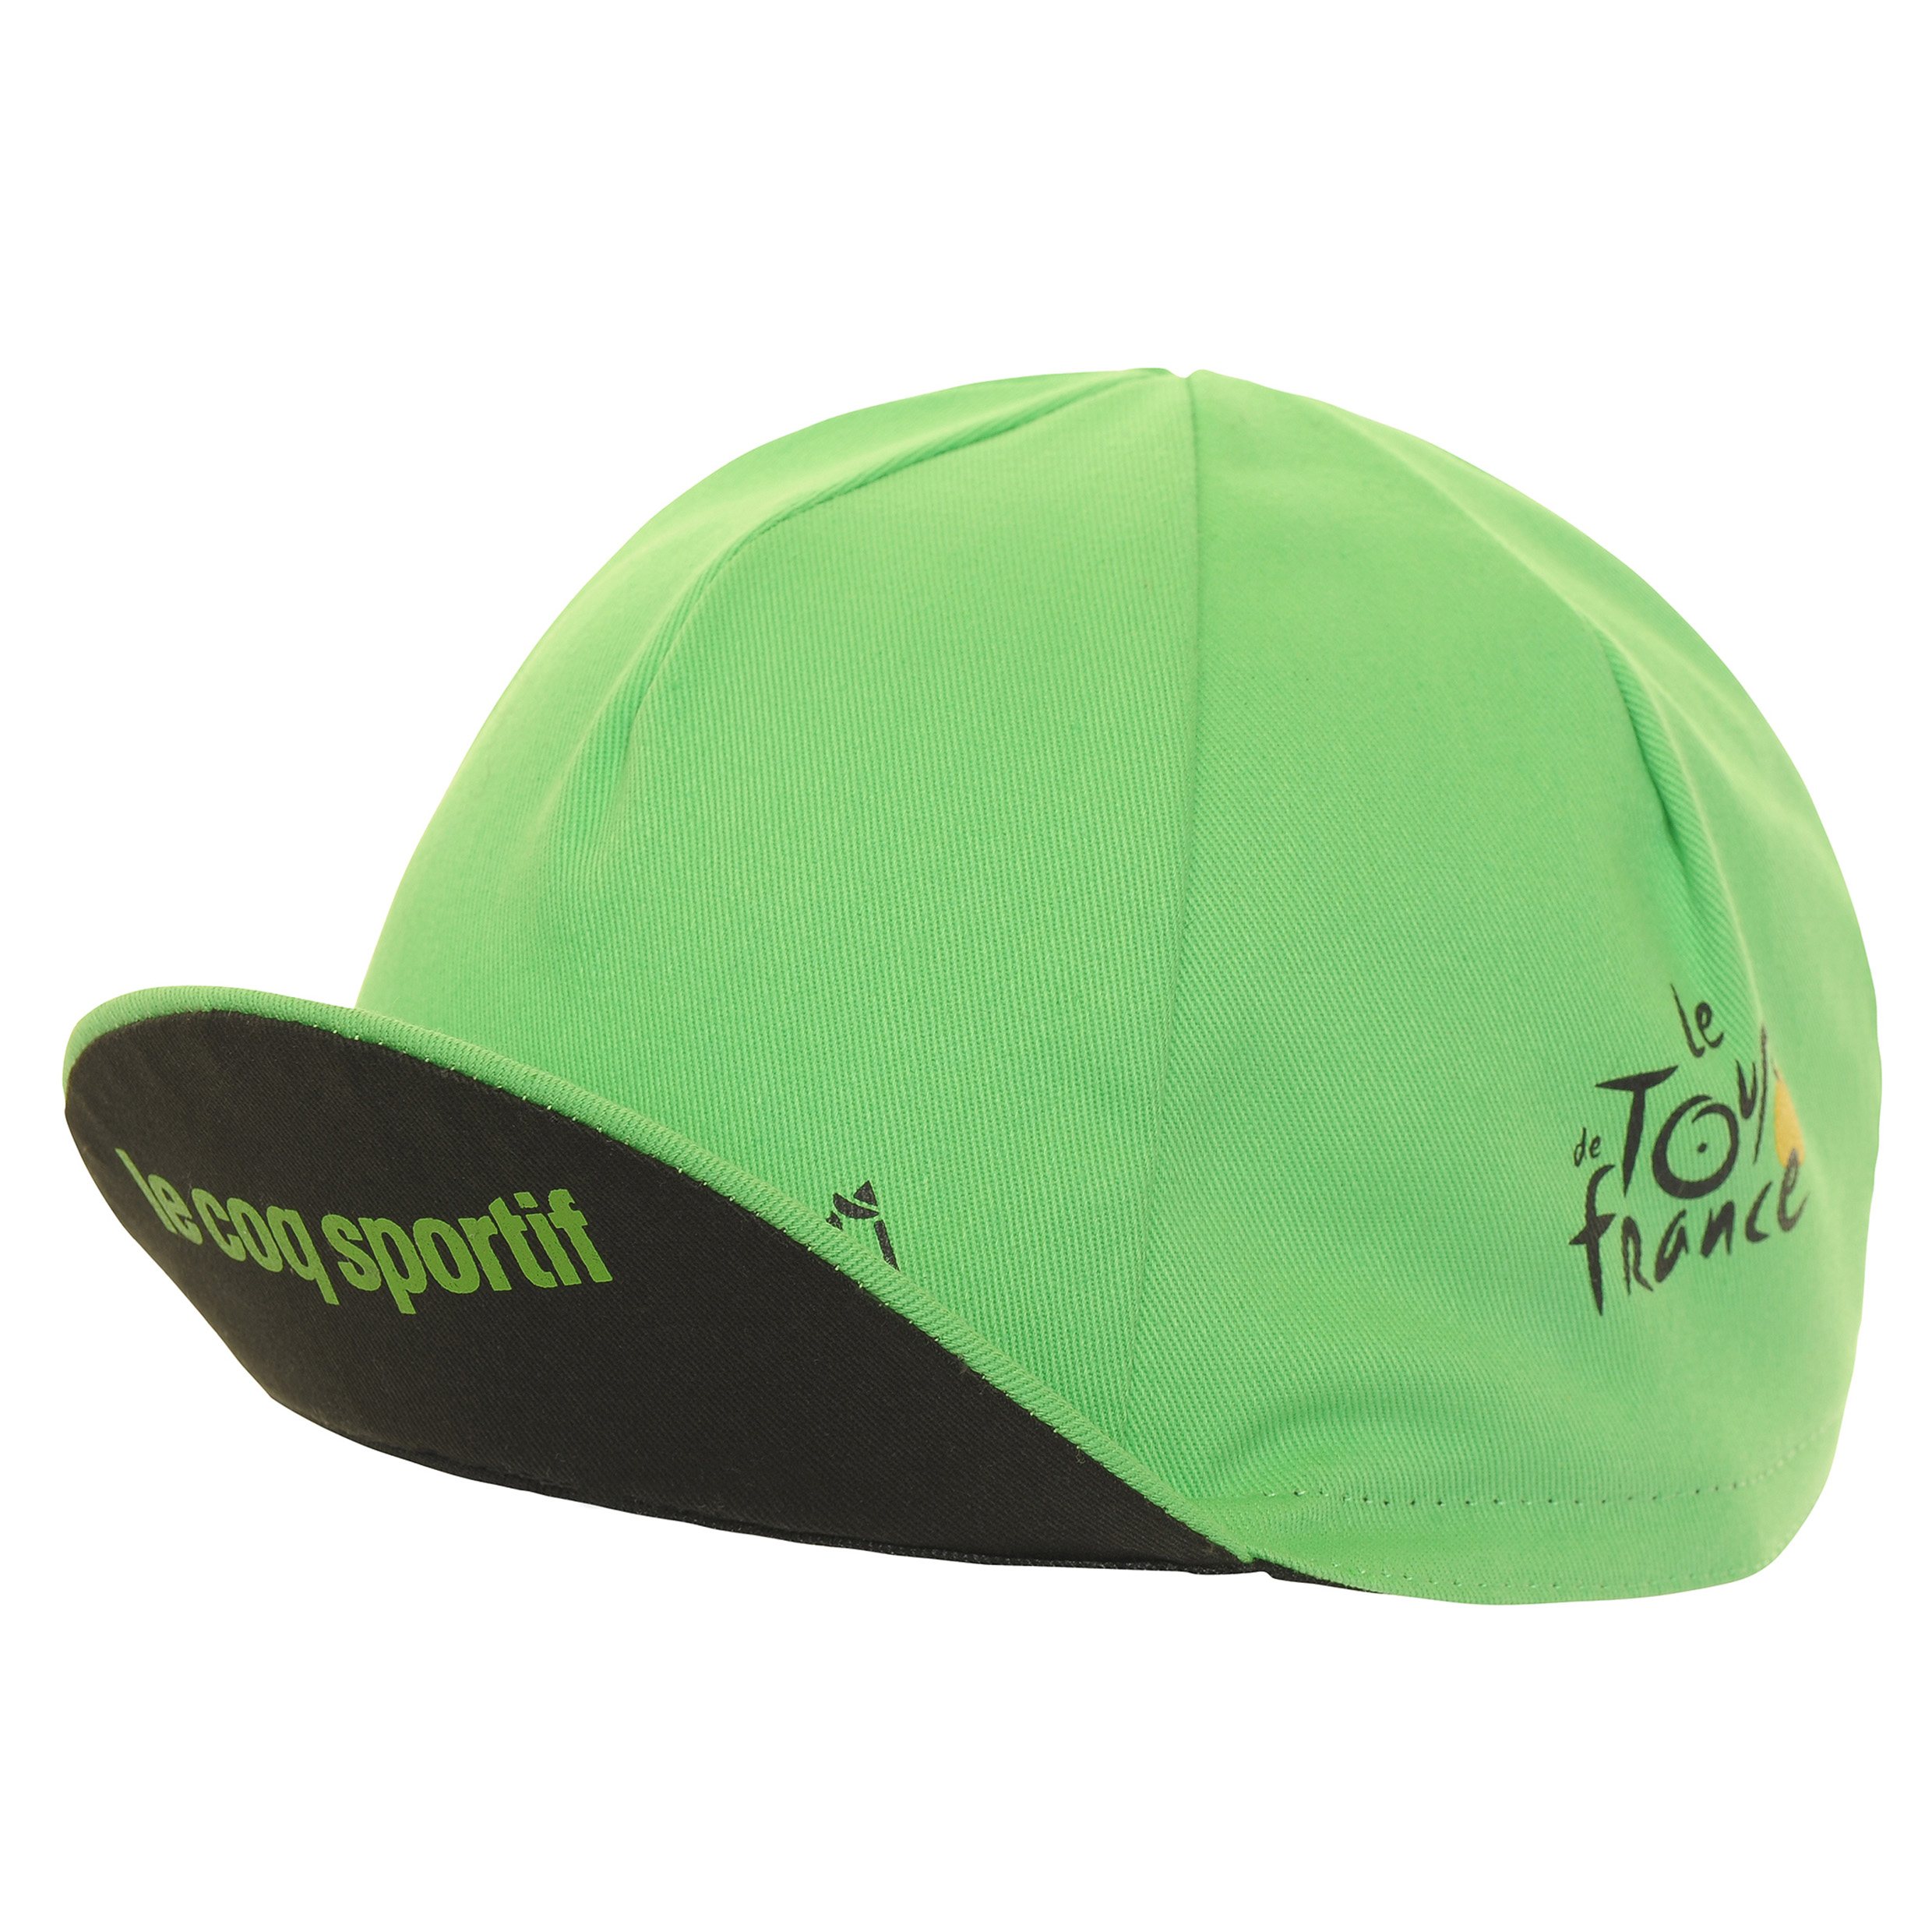 Le Tour de France Le Coq Sportif Cycling Cap - Green